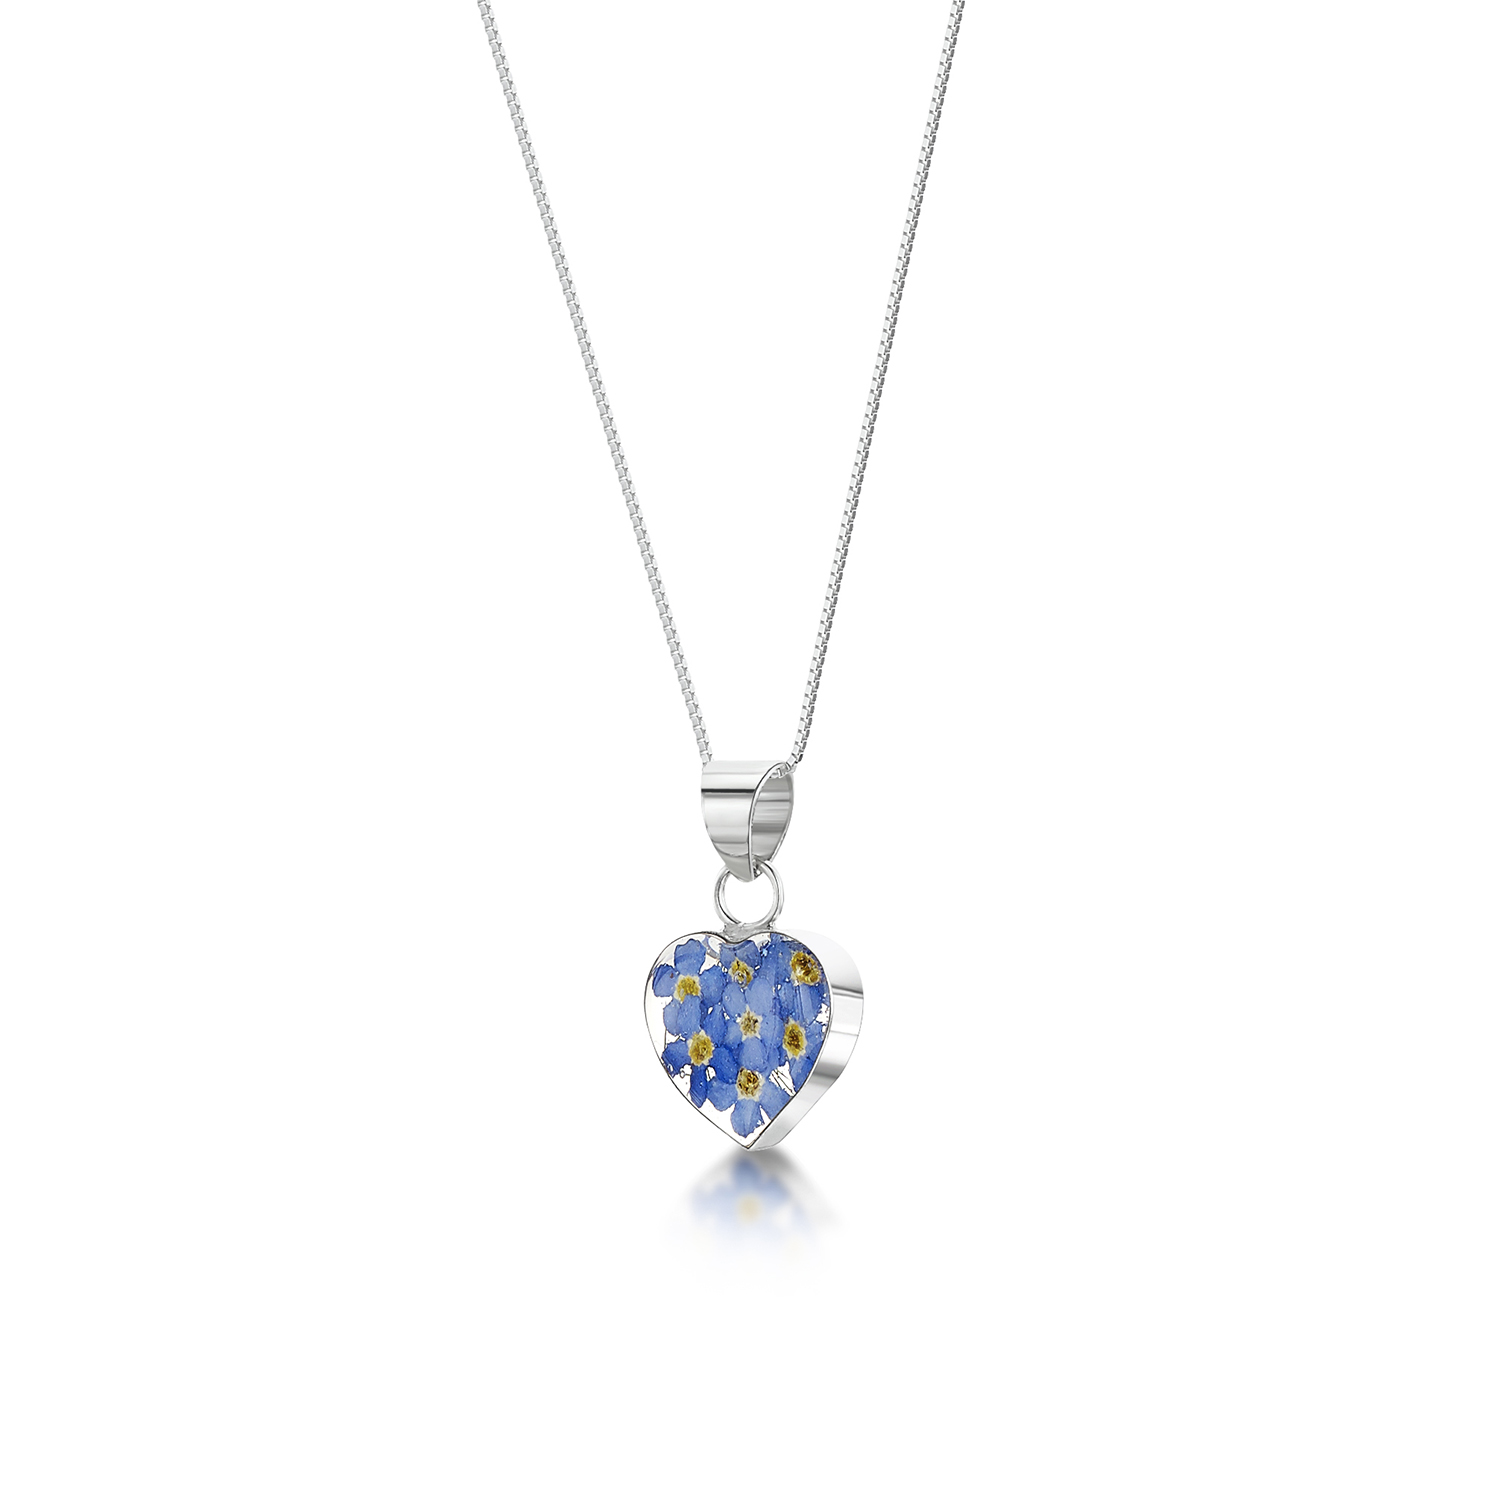 Shrieking Violet – Forget-me-not Sterling Silver Heart Pendant Necklace in Box